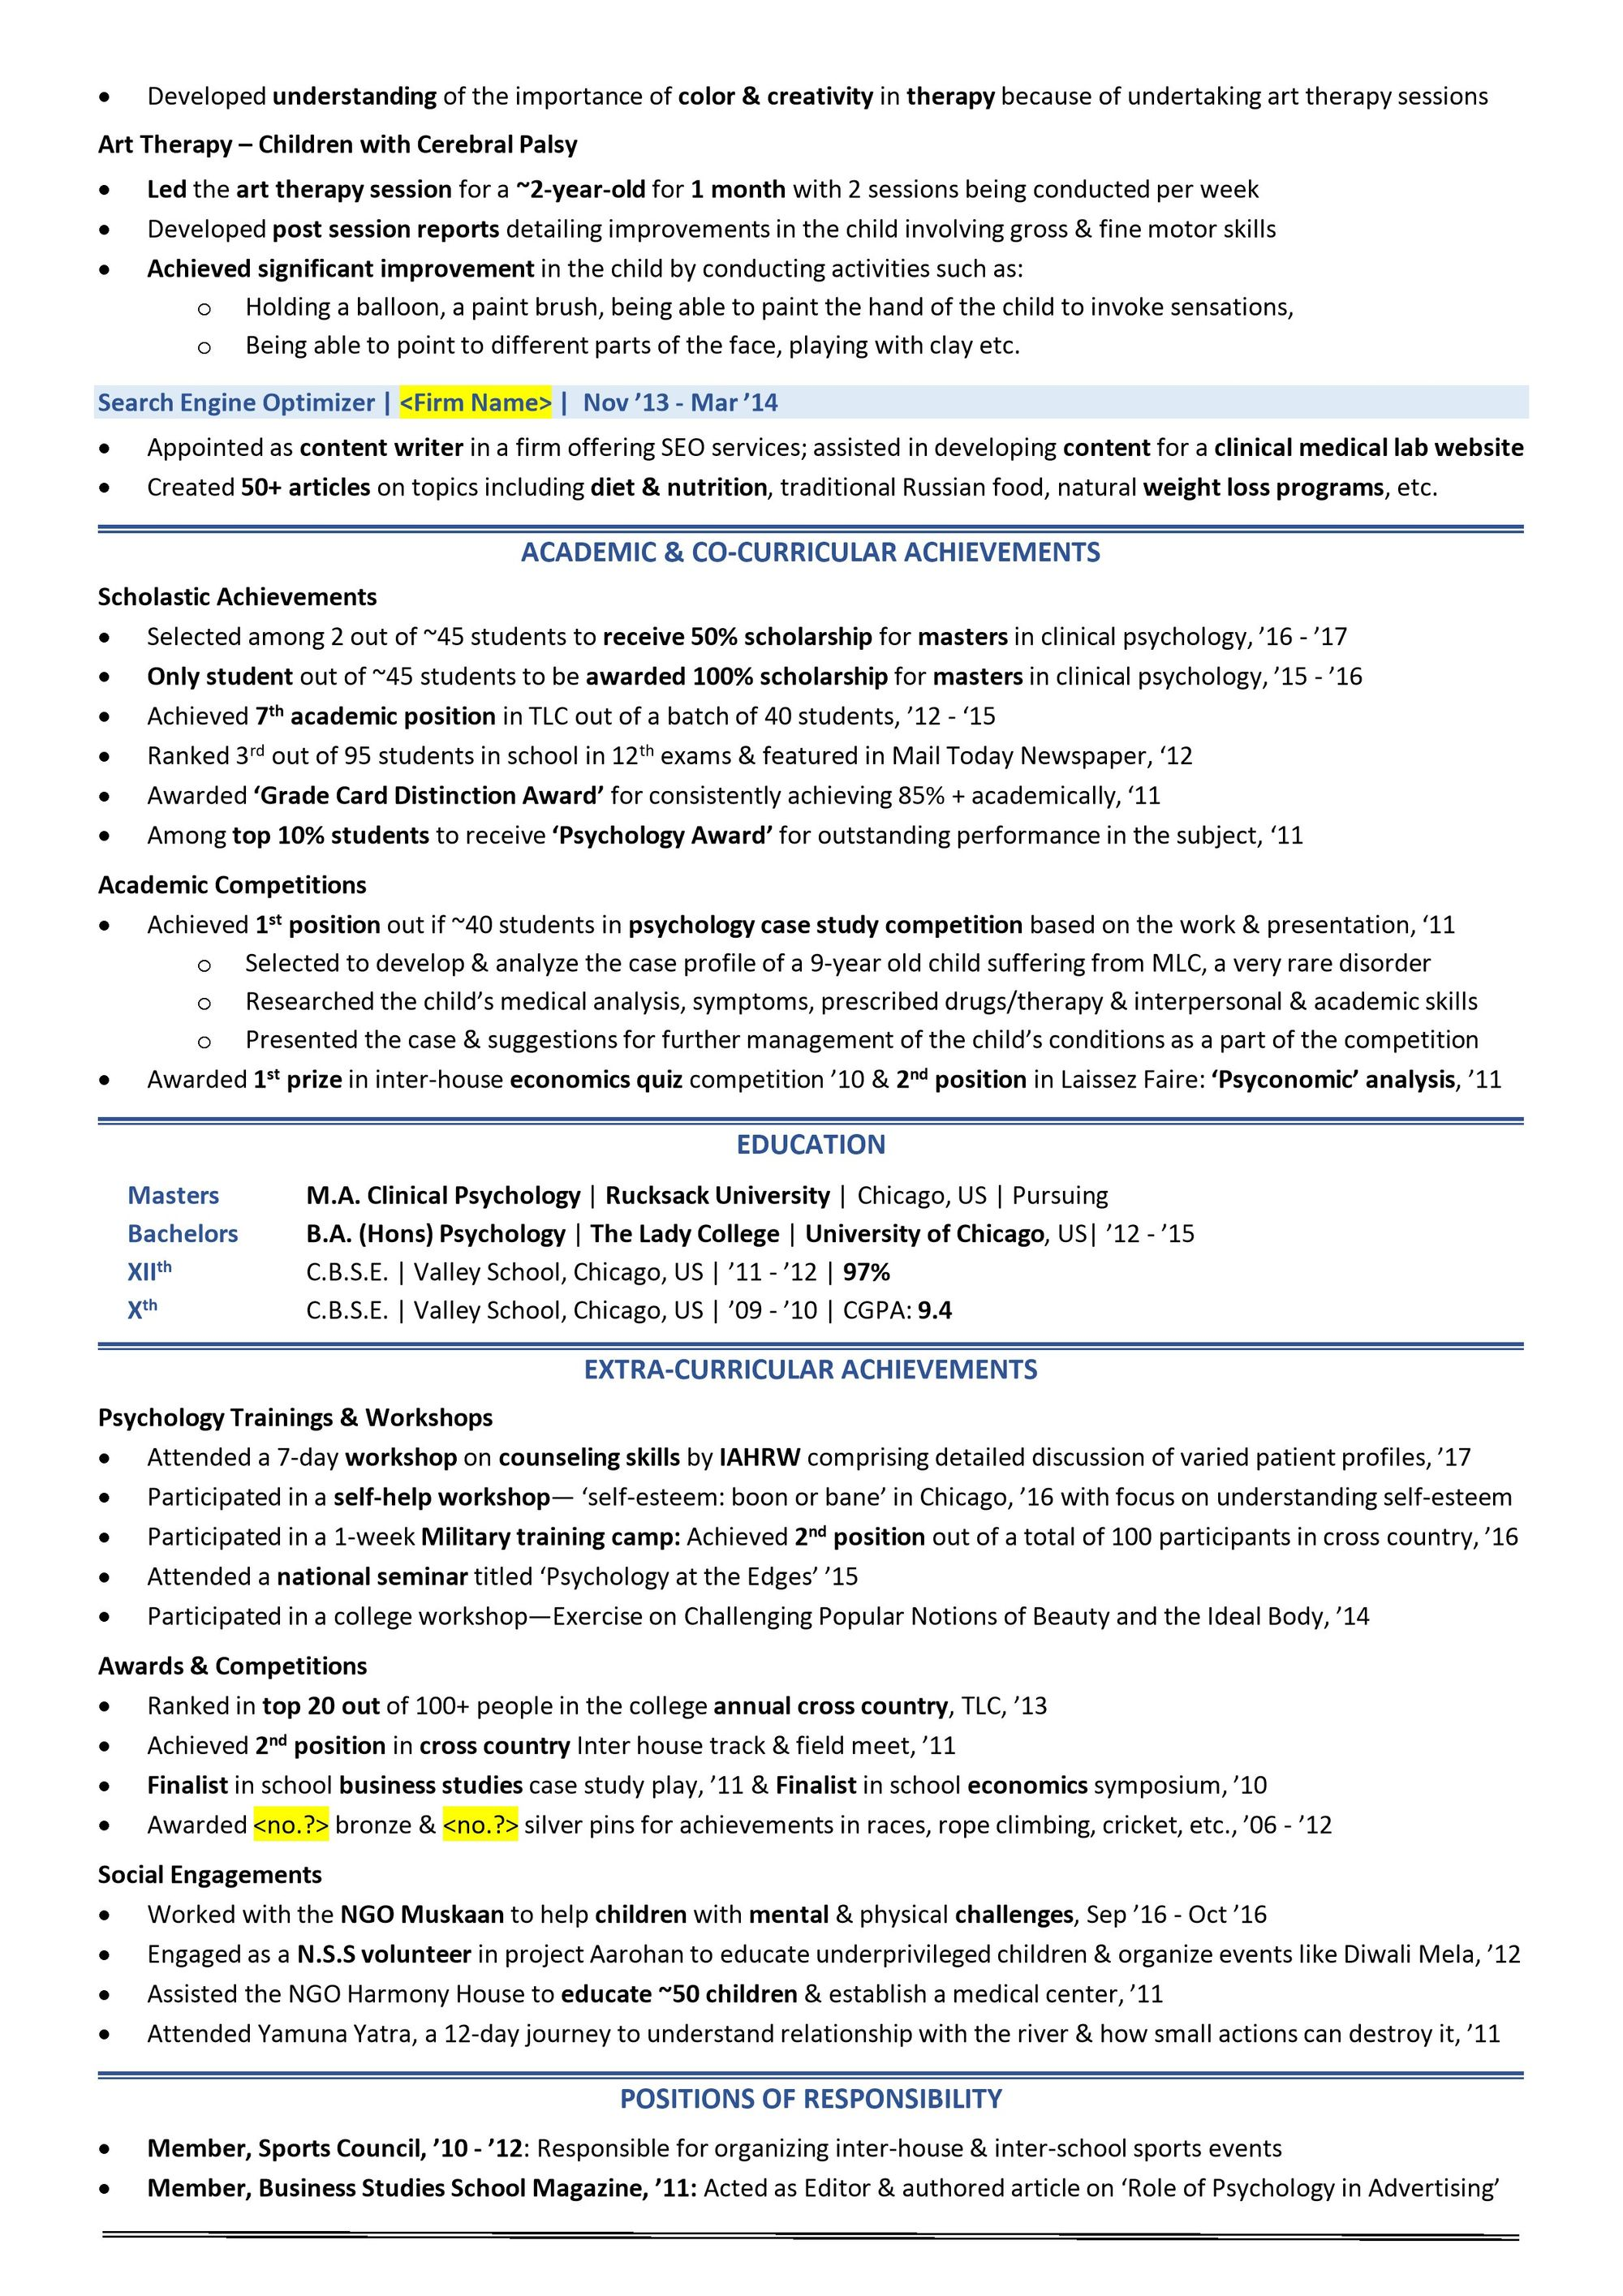 Scholarship Resume 2020 Guide With Scholarship Examples Samples